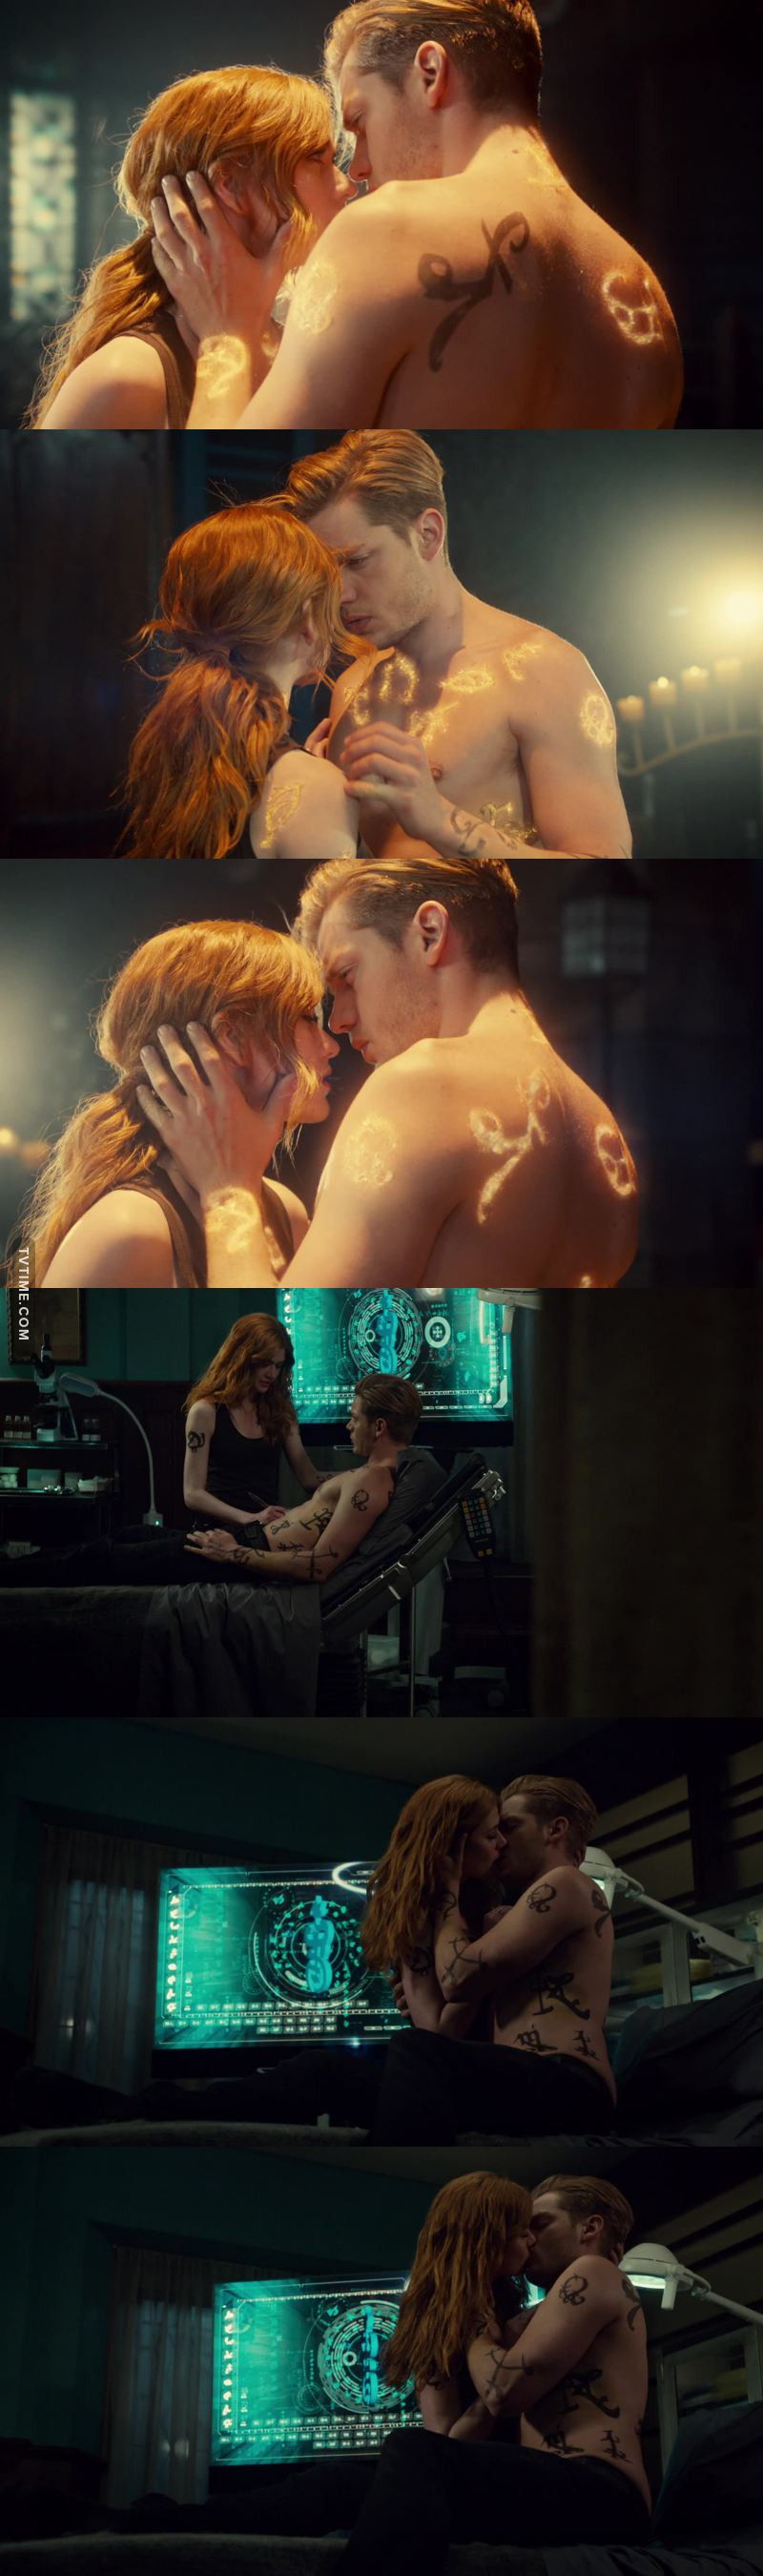 OMG WHAT AN EPISODE!! Clace were unreal!!! Best Clace scenes ever! I mean look at them THEY FINALLY TOGETHER😍😭👏🏼